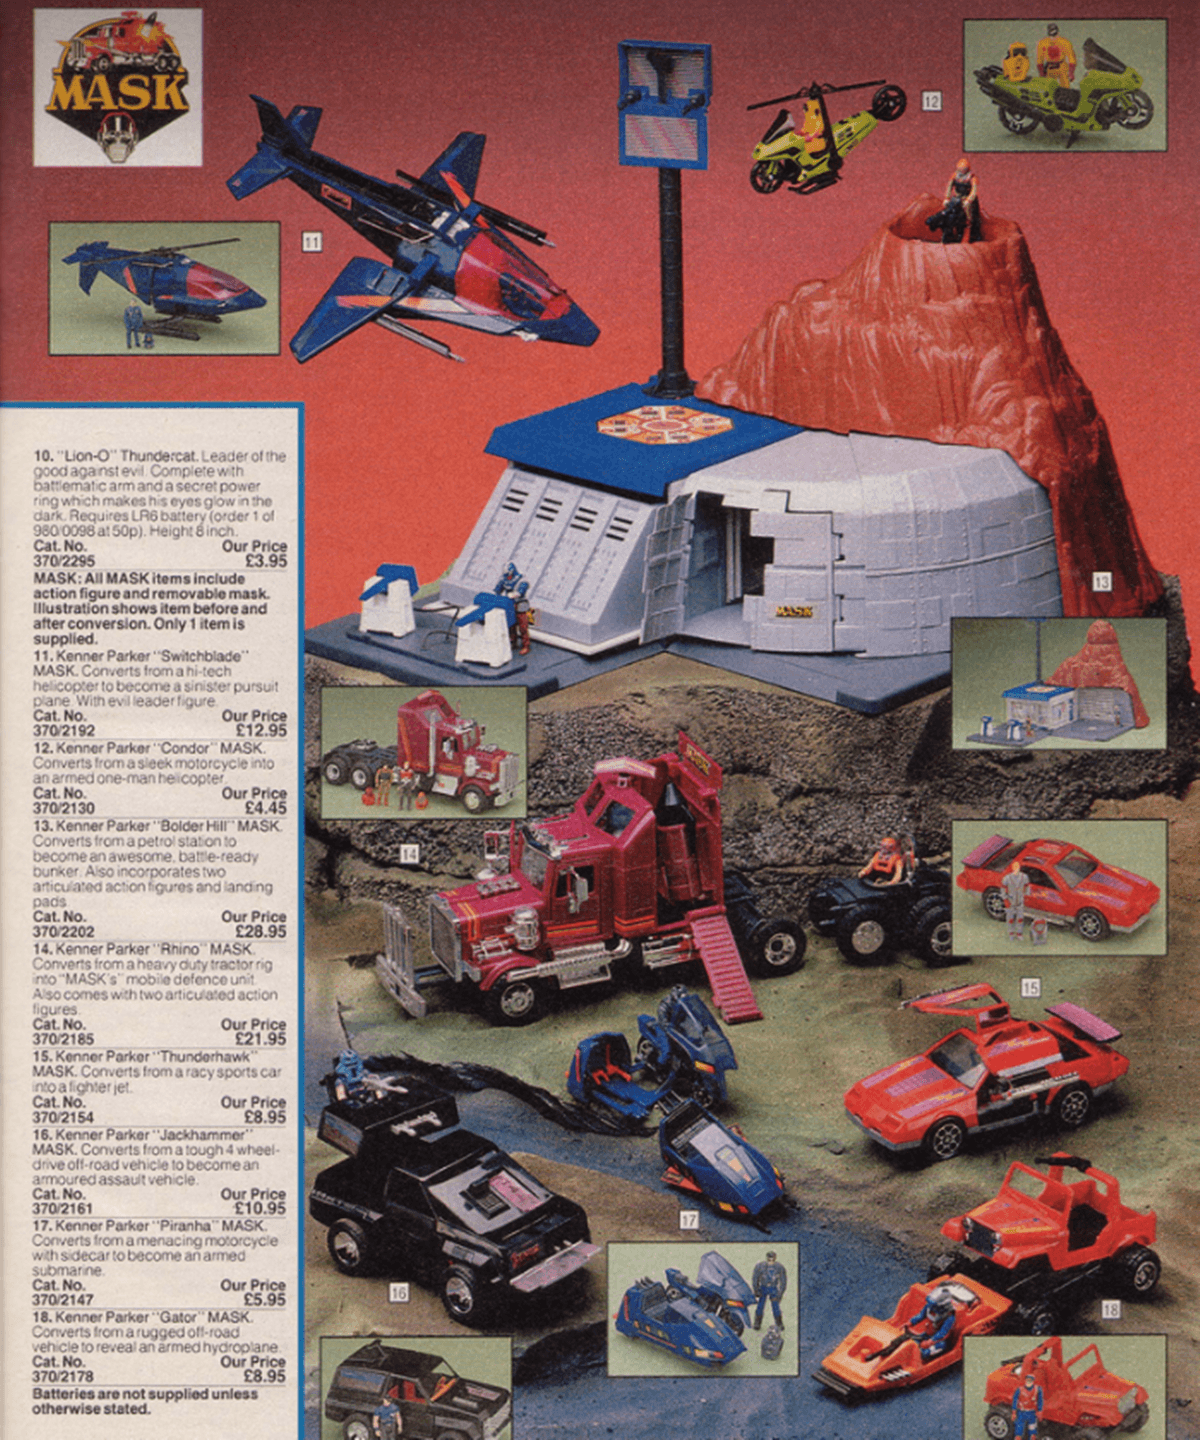 9 Take A Look Inside An Argos Catalogue From 1986!